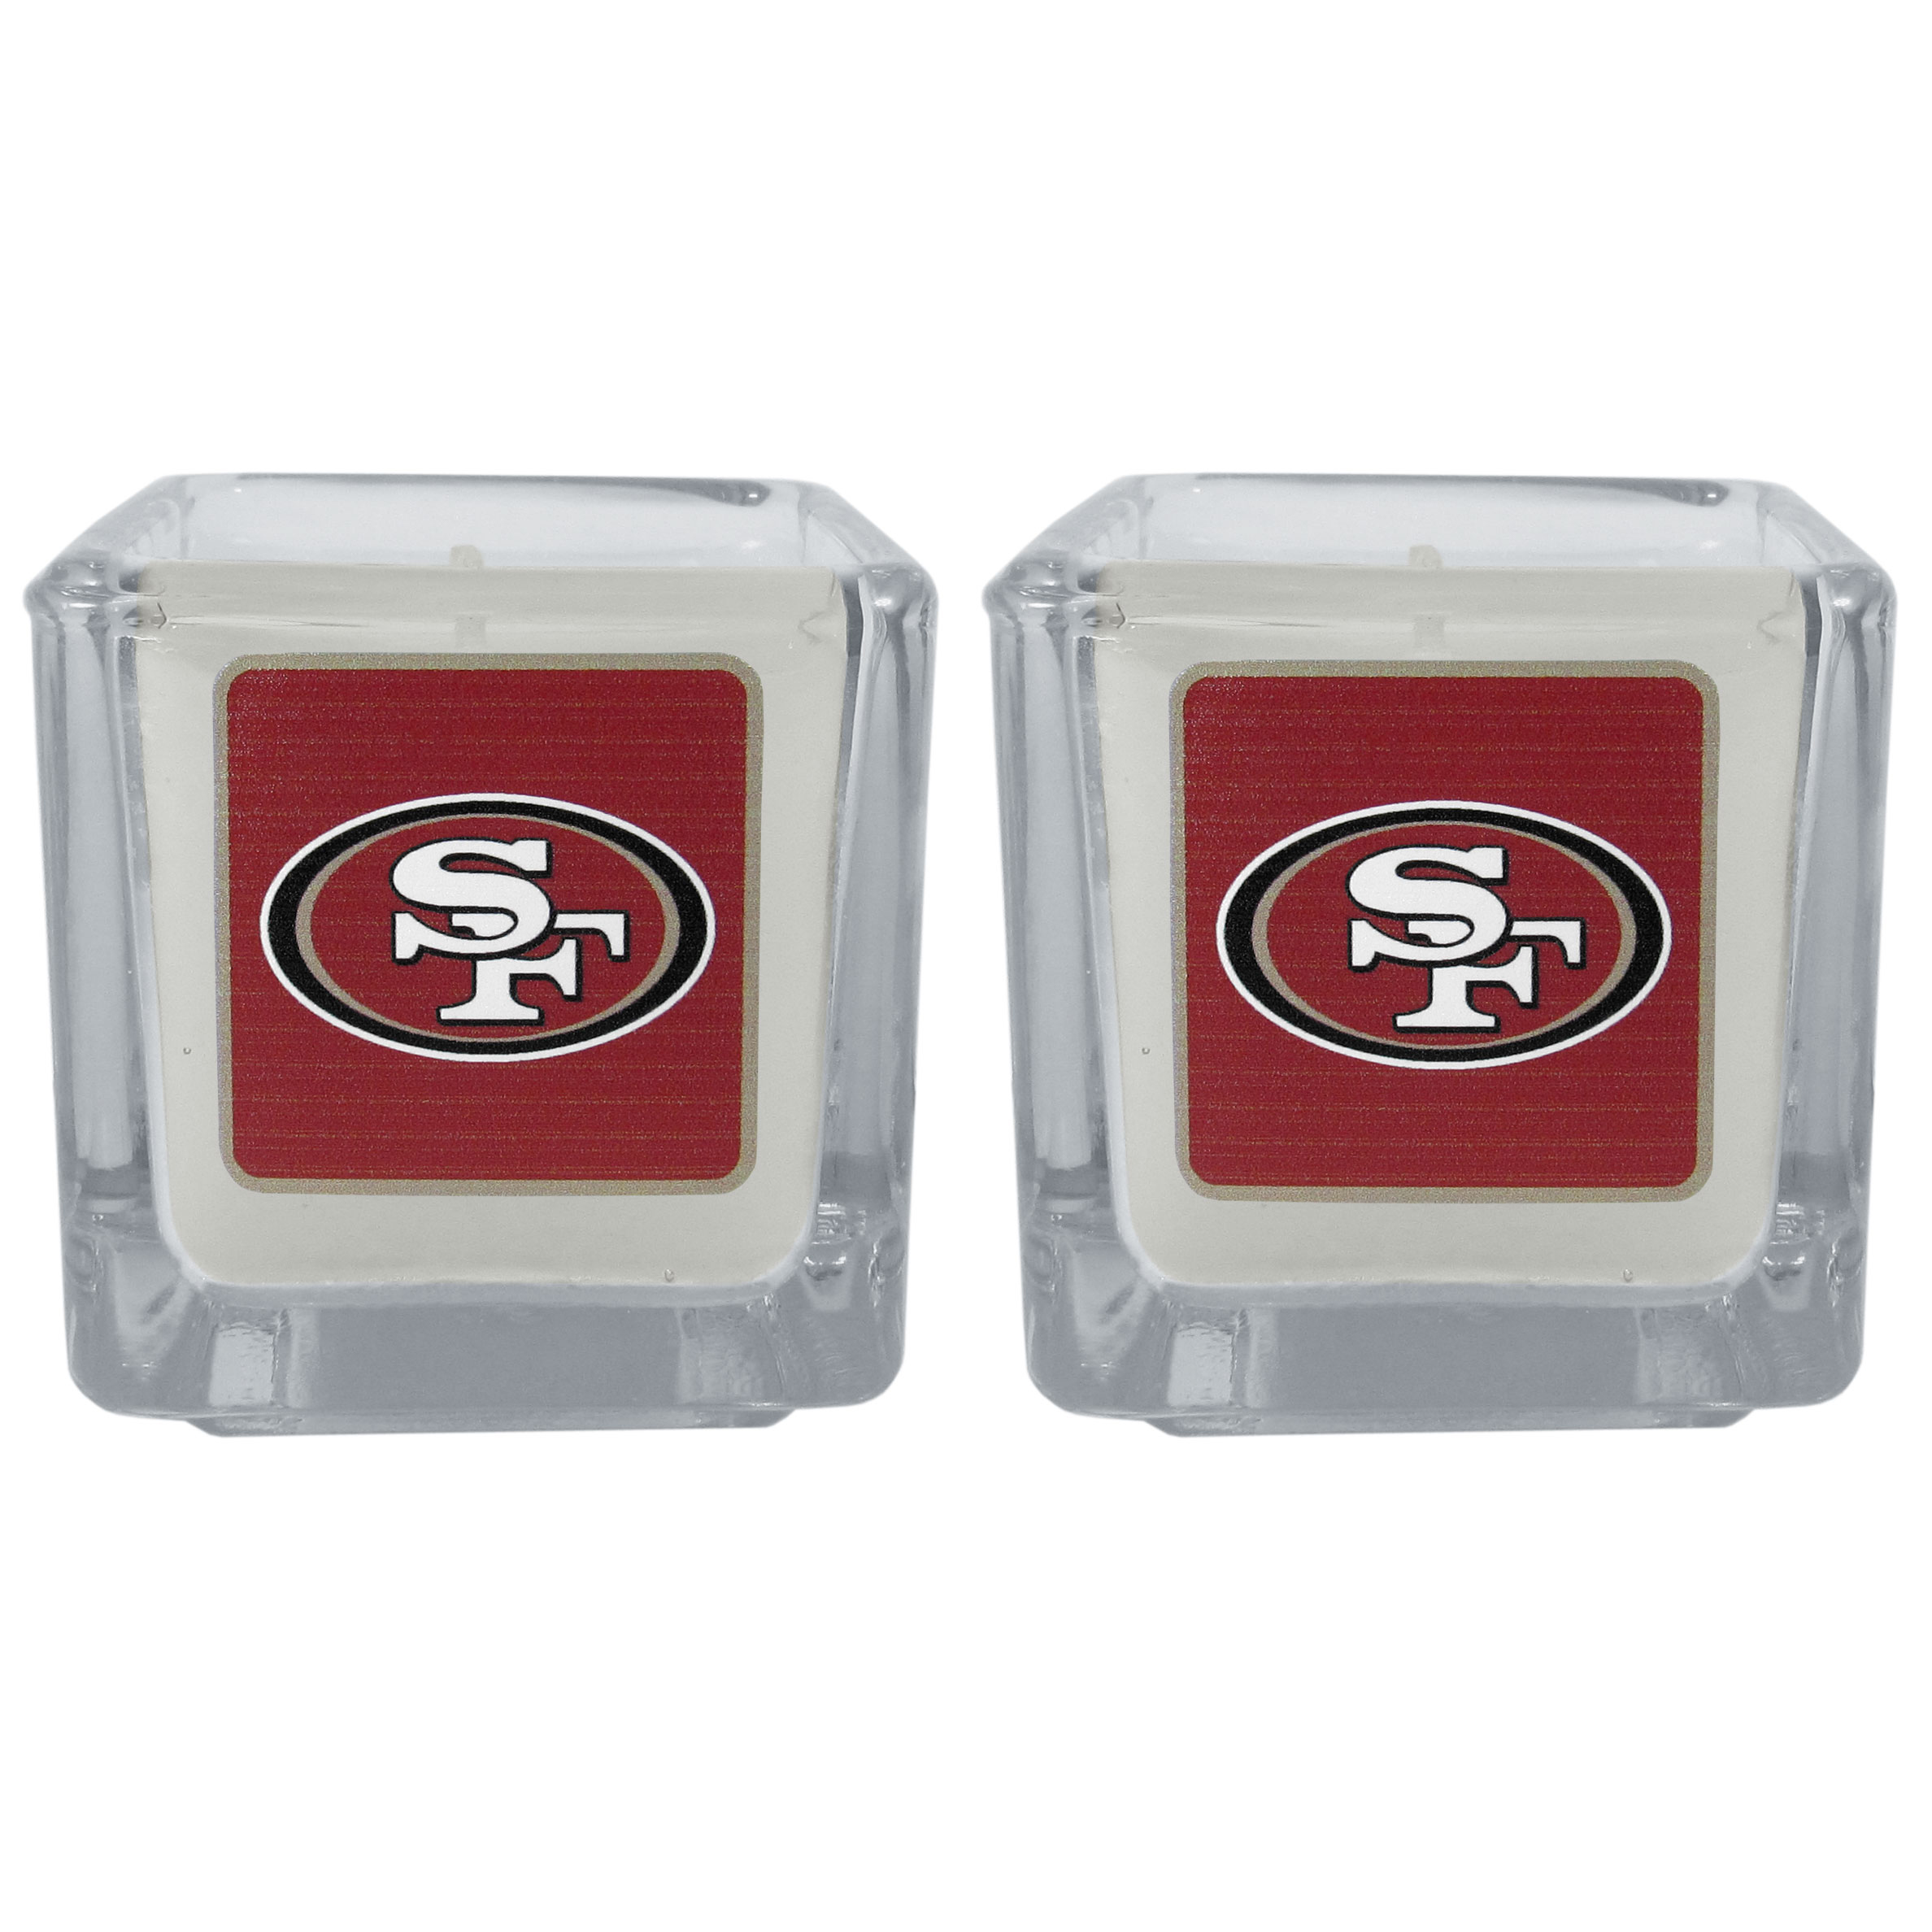 San Francisco 49ers Graphics Candle Set - Our candle set features 2 lightly vanilla scented candles with the San Francisco 49ers logo expertly printed on front. The candles are 2 inches tall in the votive style.